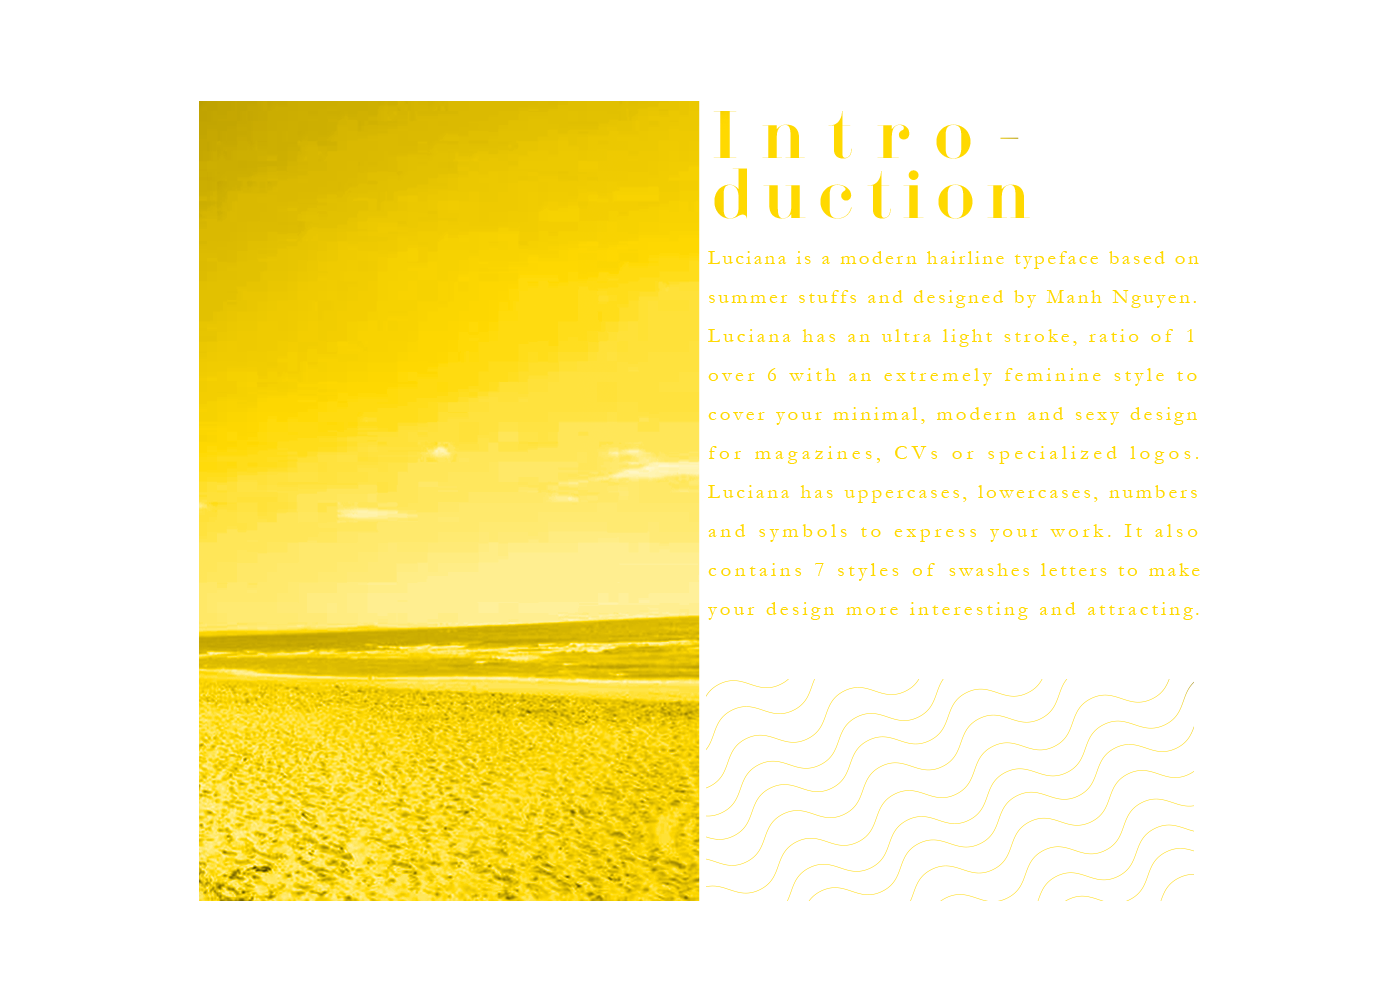 type Typeface font free fonts download luciana Zin zinartwork Layout yellow black